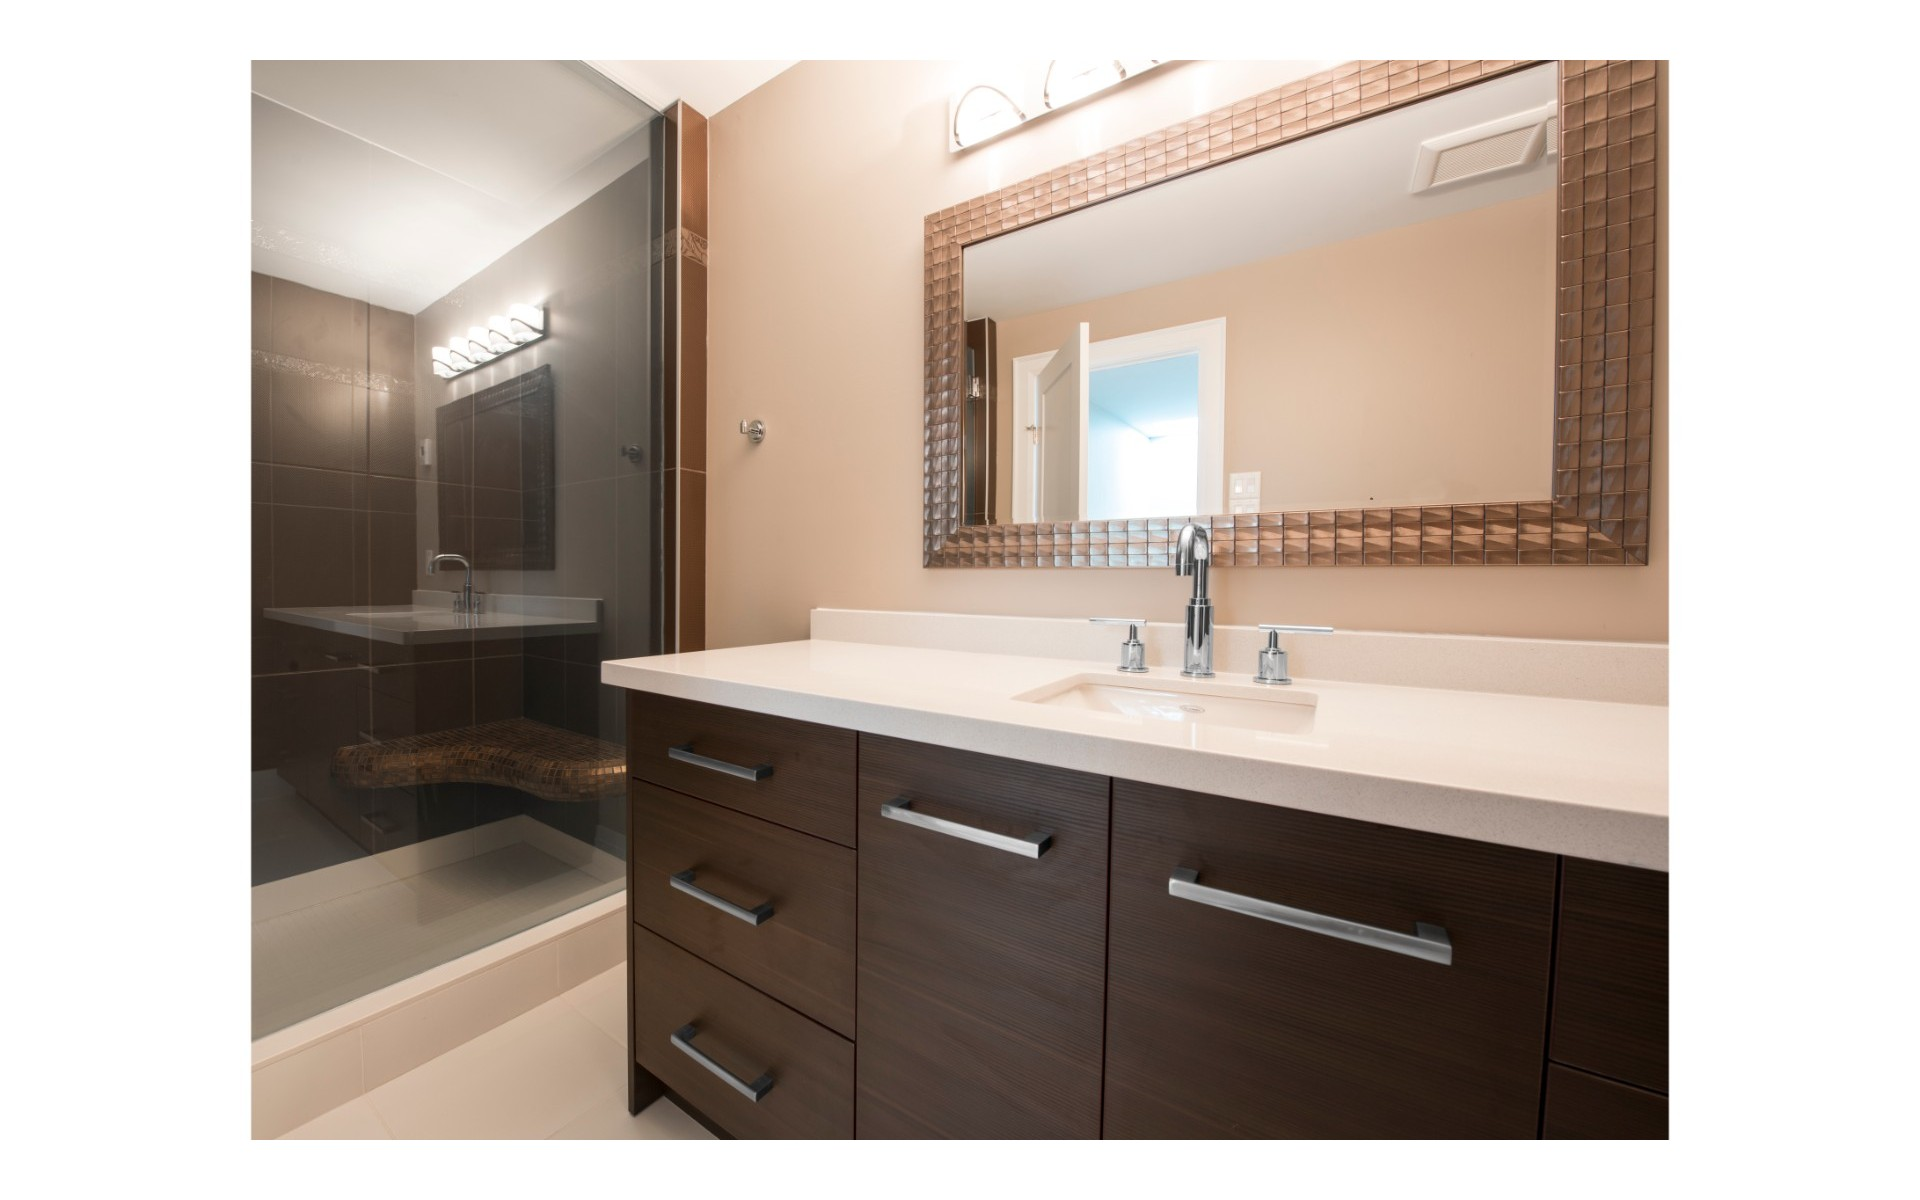 Dark wood vanity with stainless steel accents and light countertop